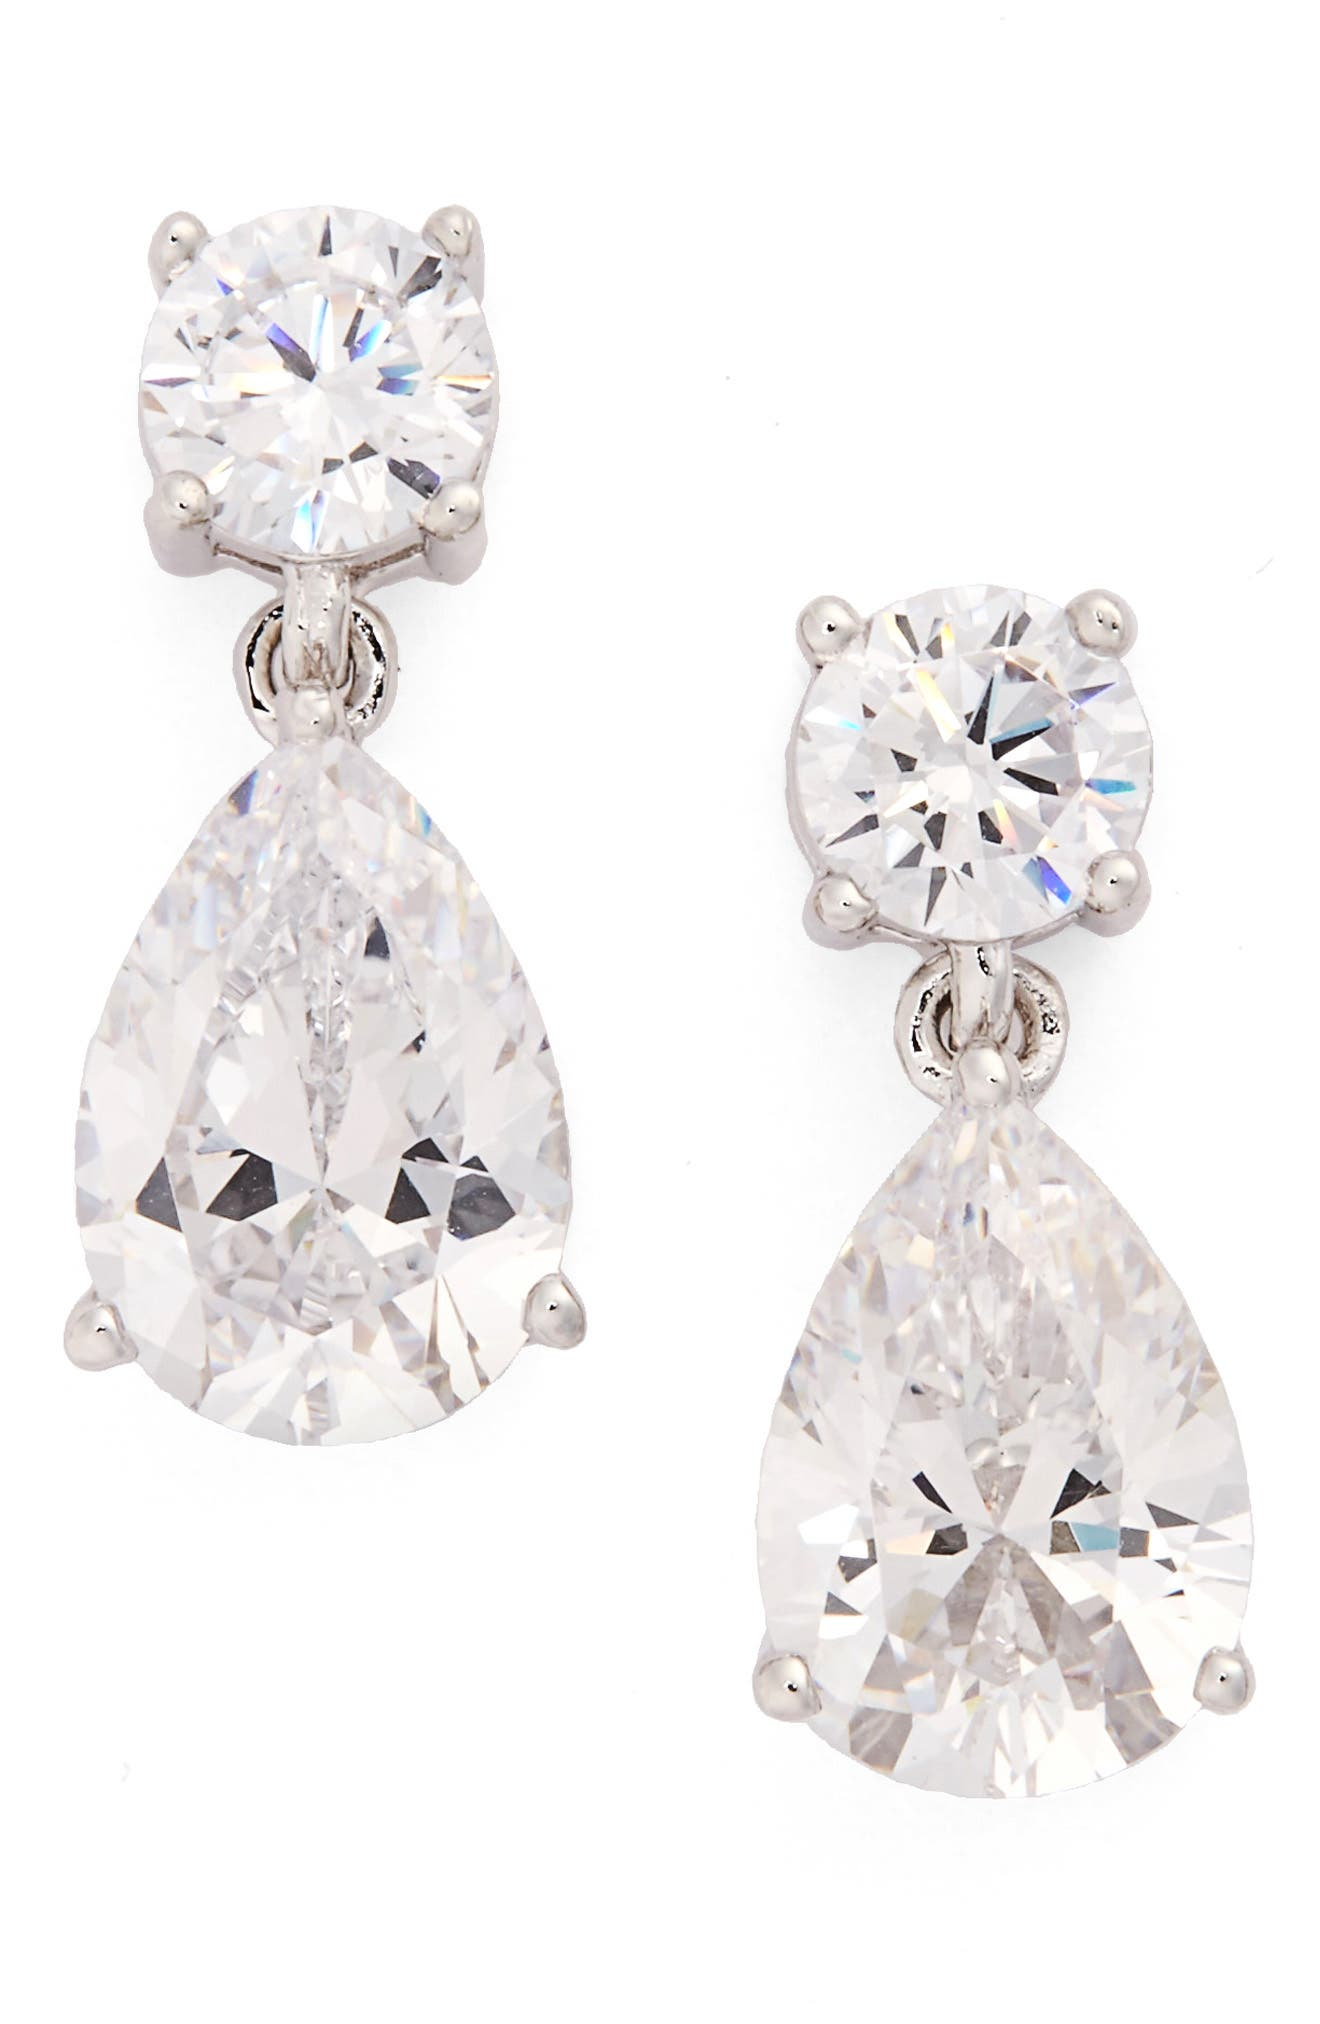 Cubic Zirconia Teardrop Earrings,                             Alternate thumbnail 2, color,                             SILVER/ CLEAR CZ